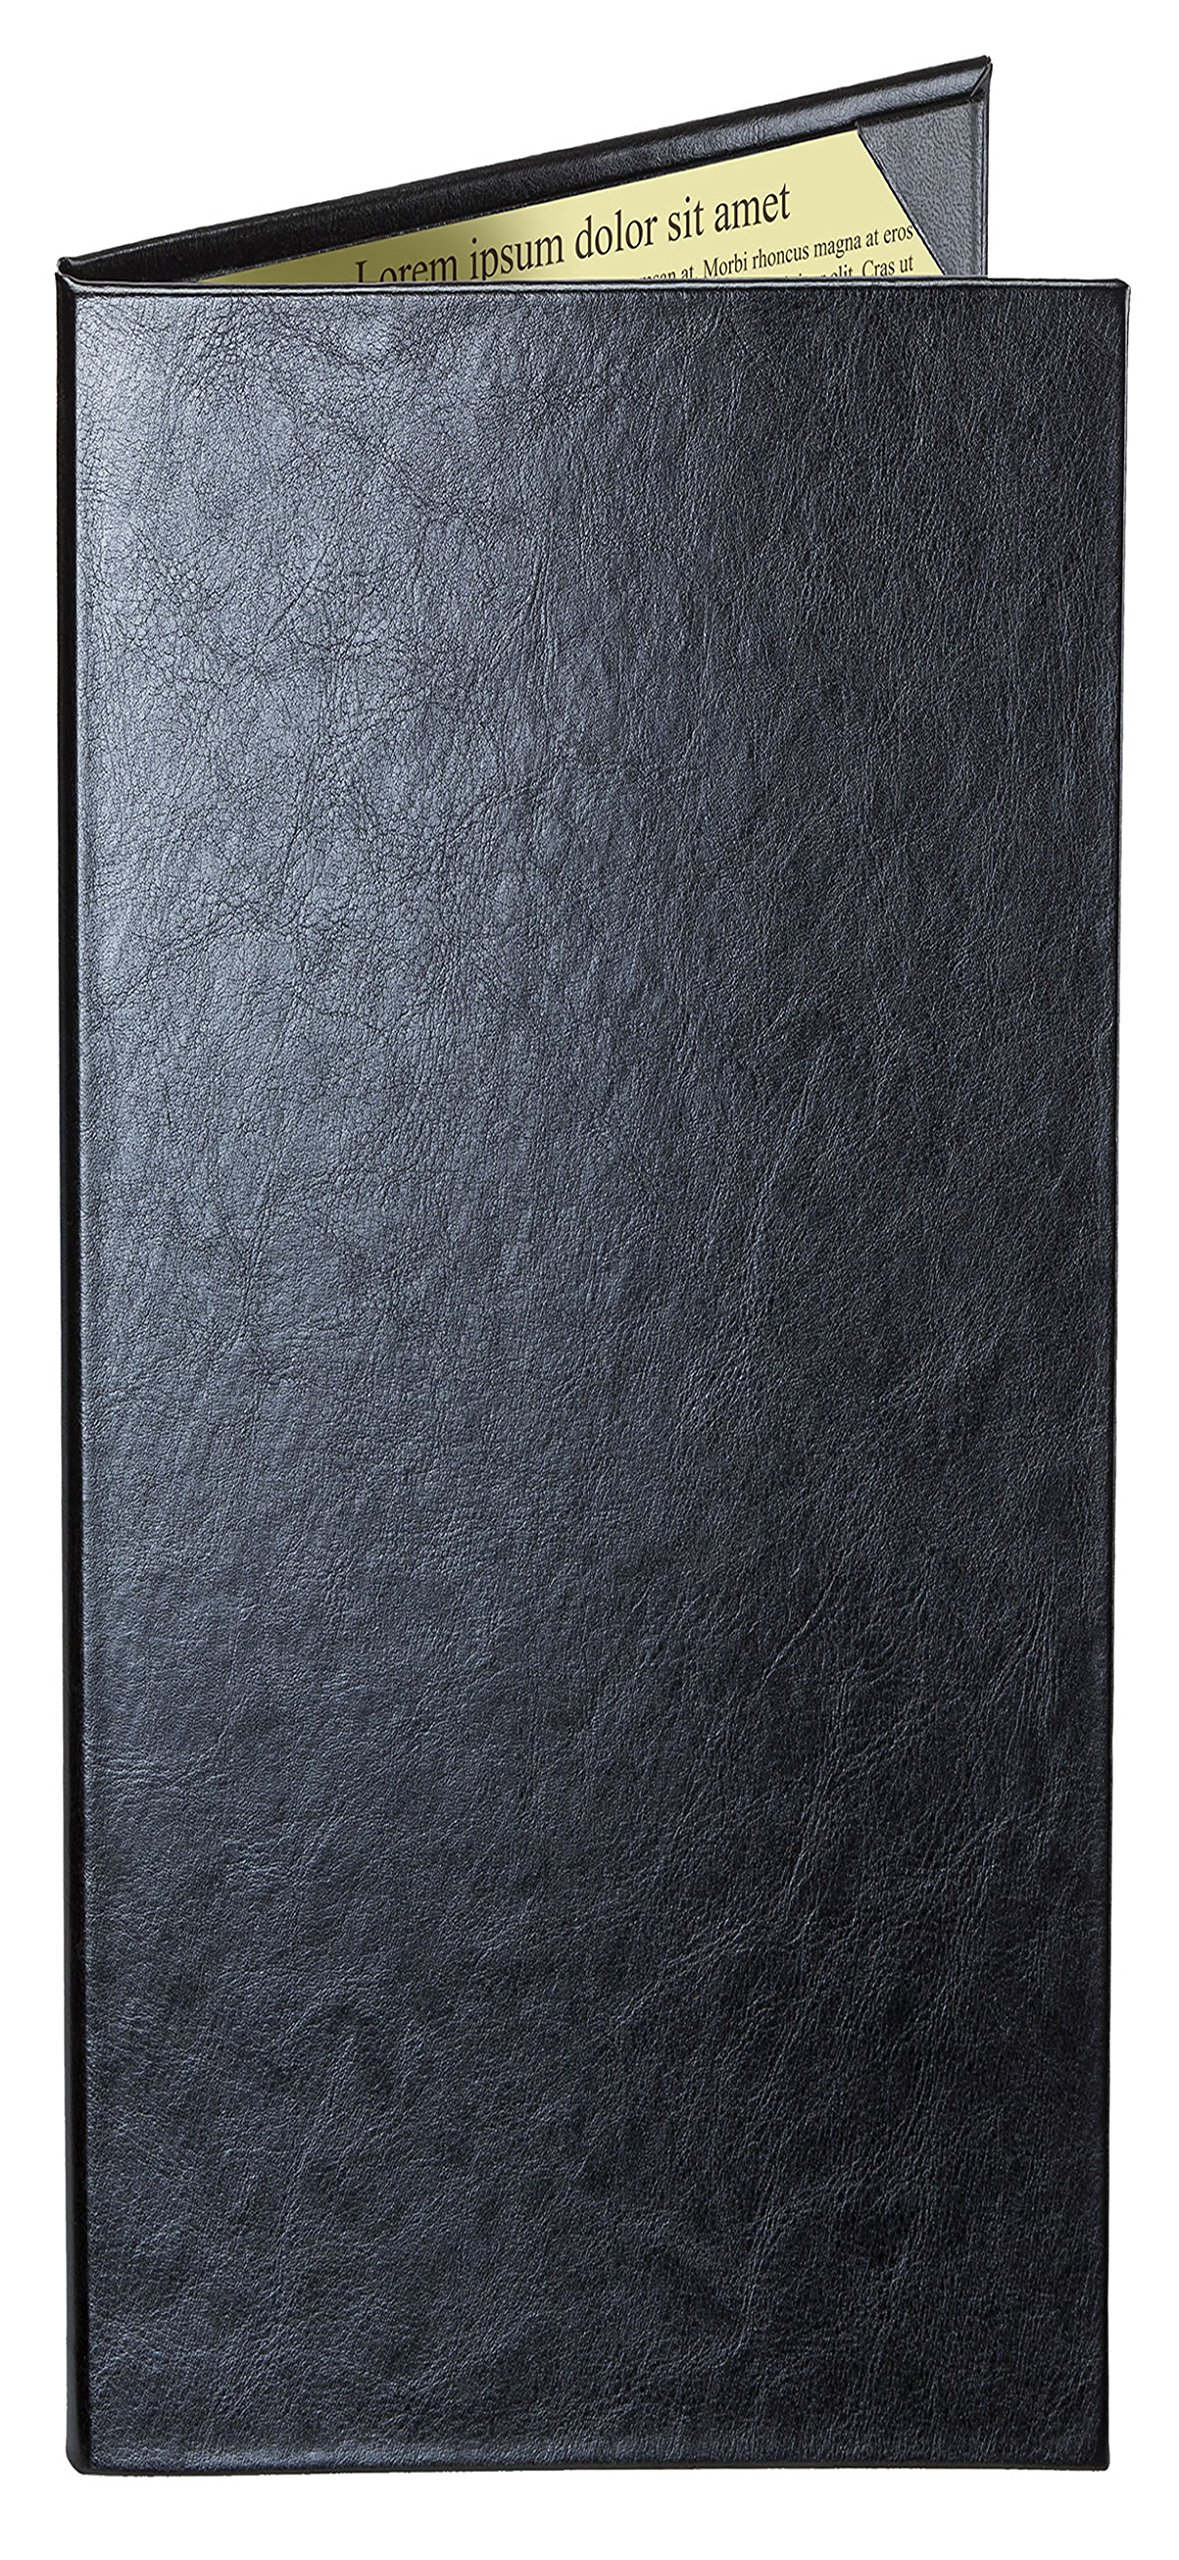 Case of 5 Cascade Casebound ''Tall & Thin'' Menu Covers #8098 BLACK DOUBLE PANEL - 2-VIEW - 4.25'' WIDE x 14'' TALL. Interior album corners. Type MenuCoverMan in Amazon search.